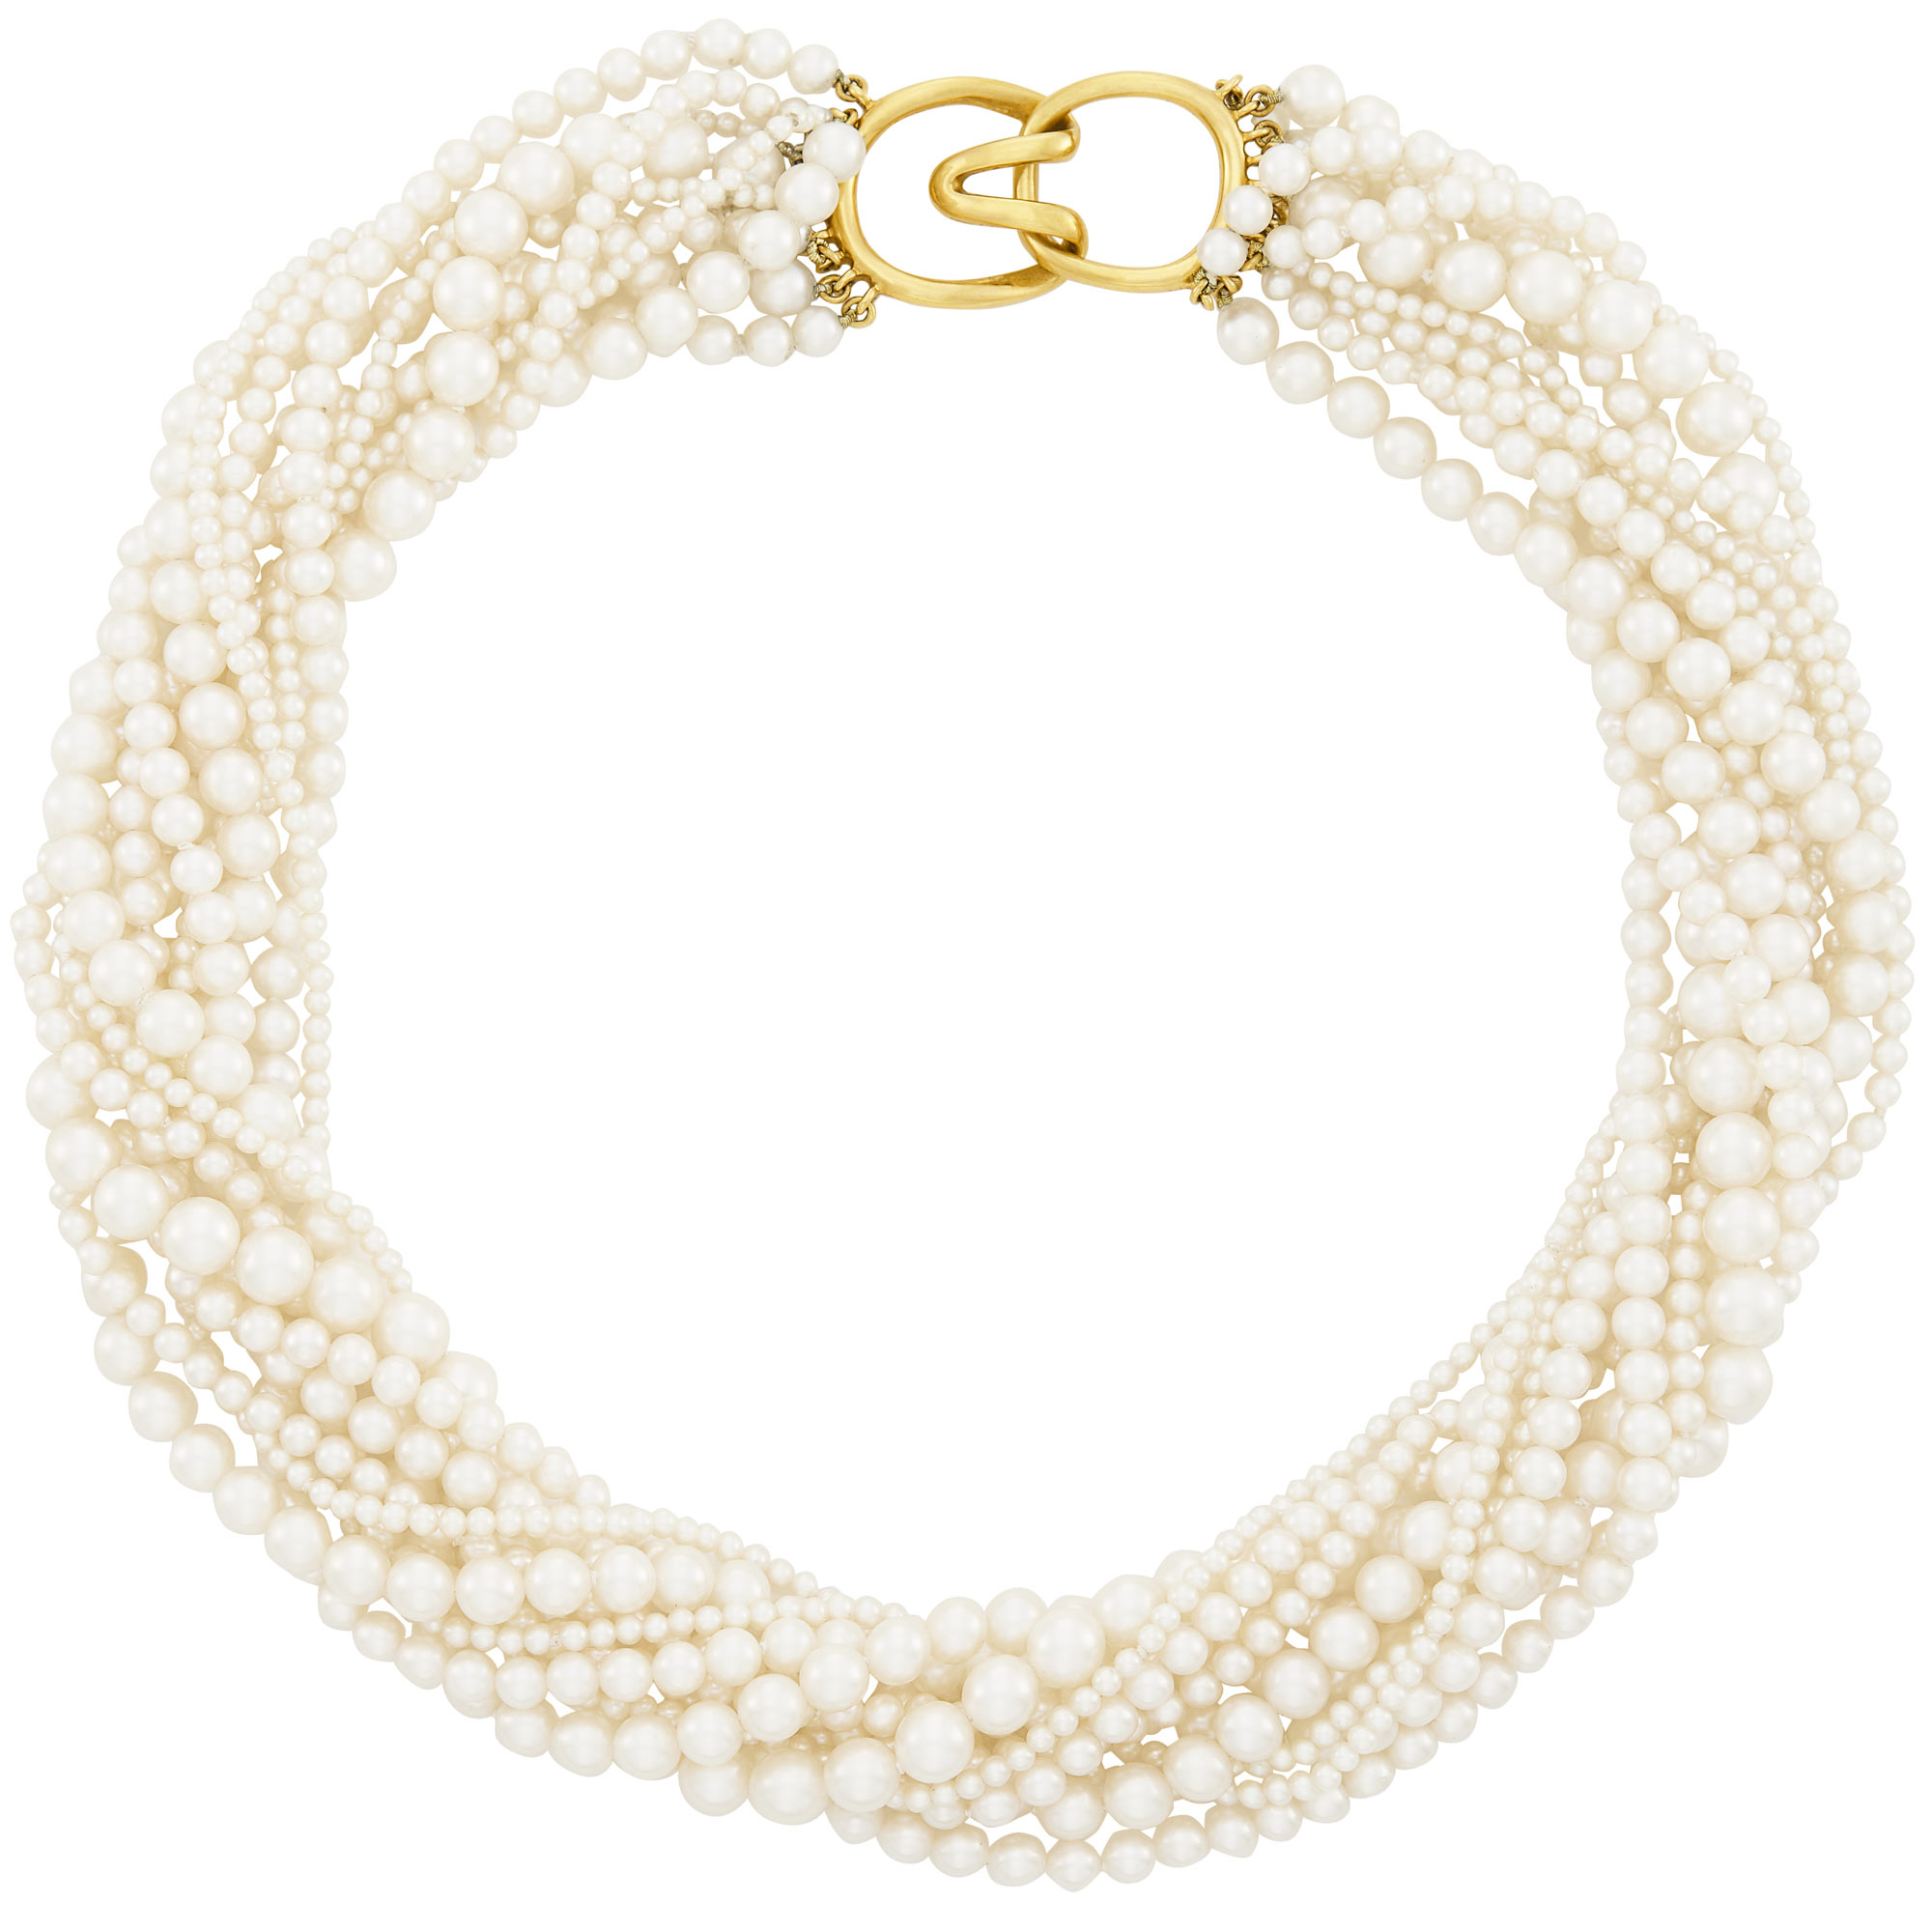 Lot image - Eleven Strand Cultured Pearl Torsade Necklace with Gold Clasp, Tiffany & Co.